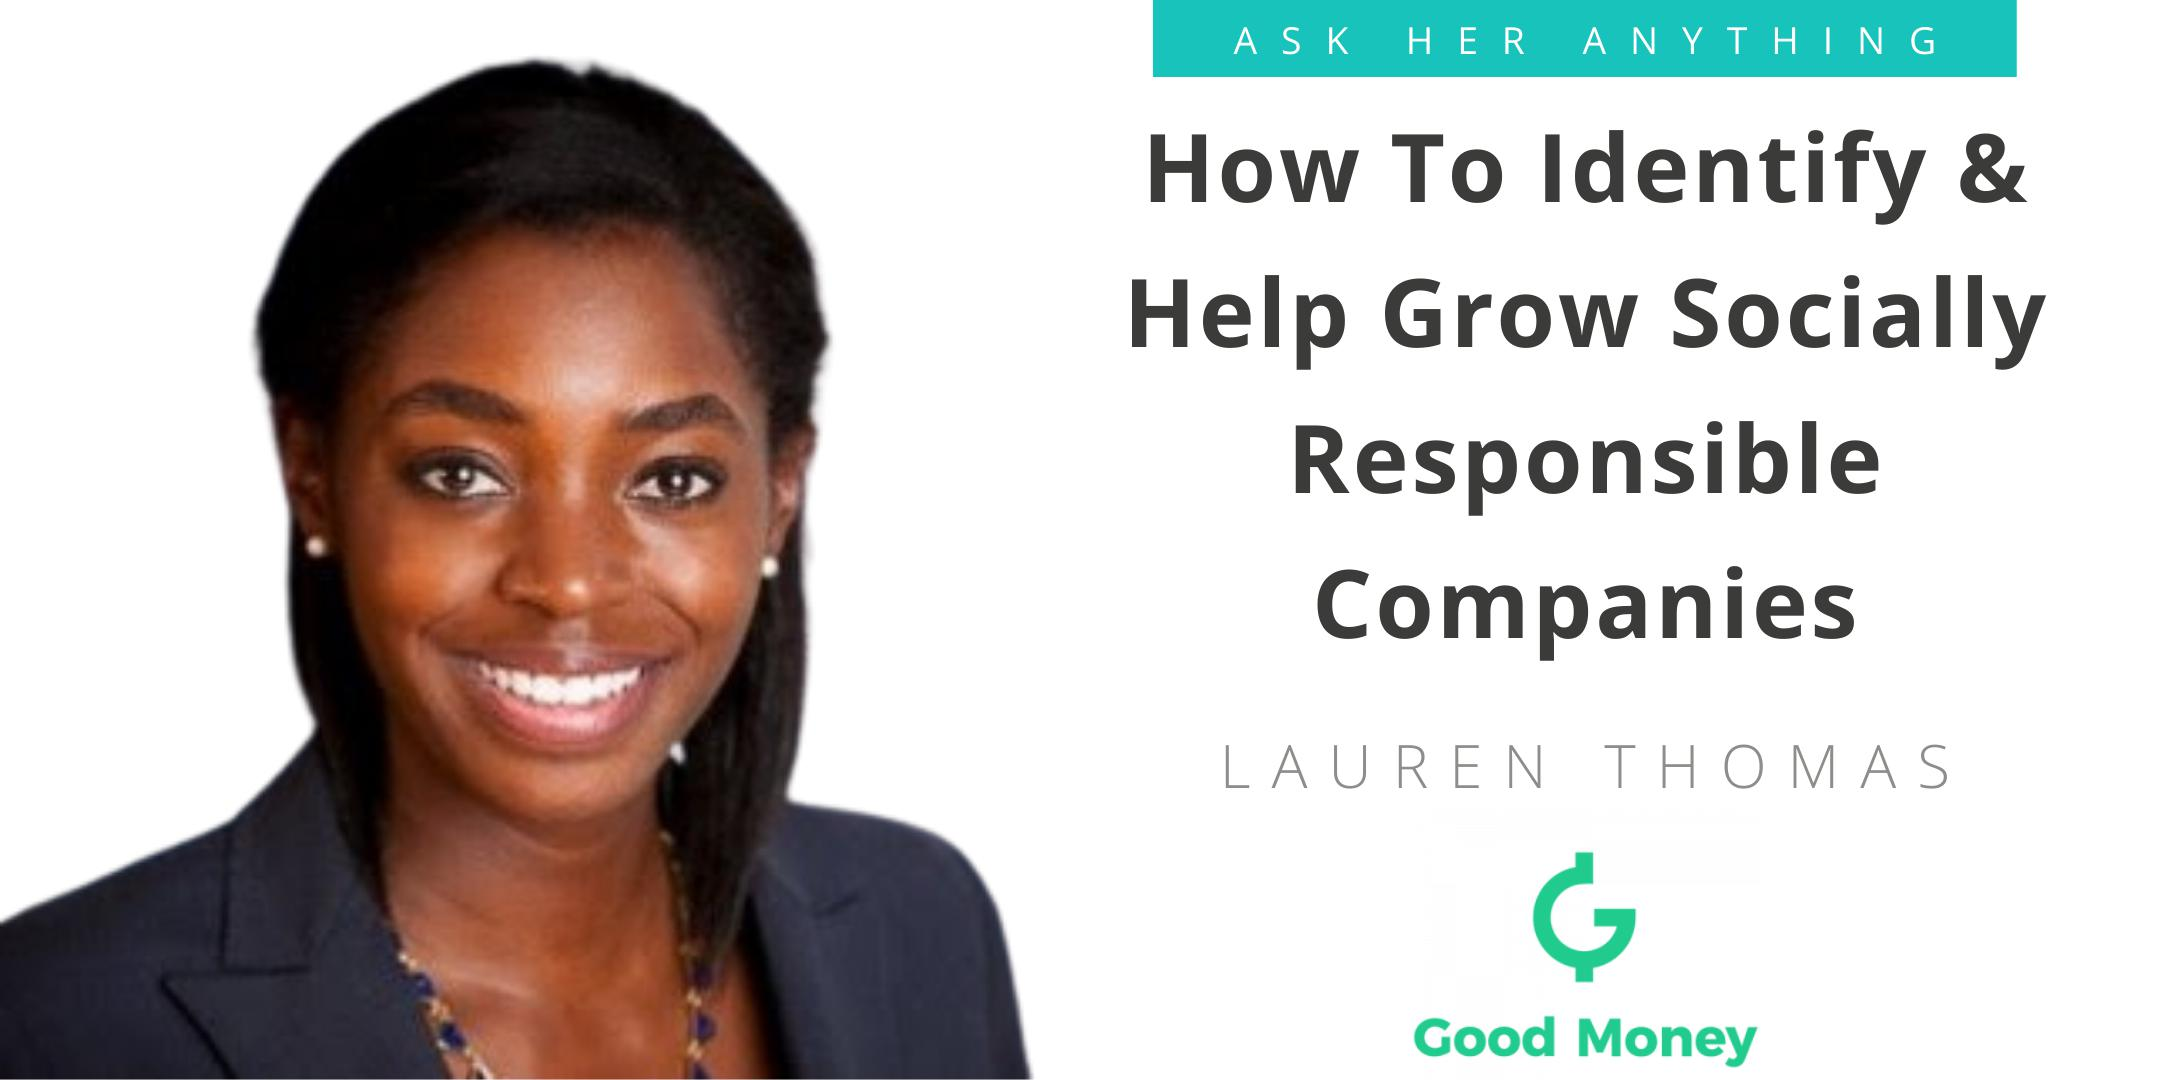 How To Identify & Help Grow Socially Responsible Companies